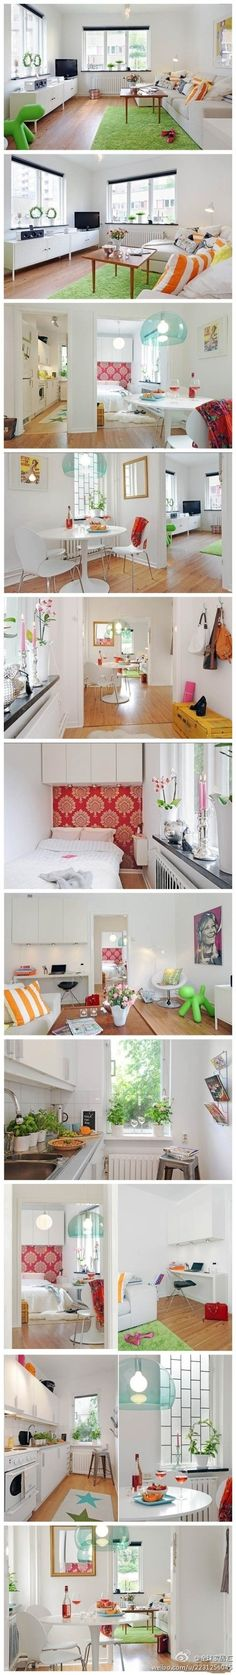 white + pops of color + patterns + minimal swedish design // cheap chic & fun // rental solutions